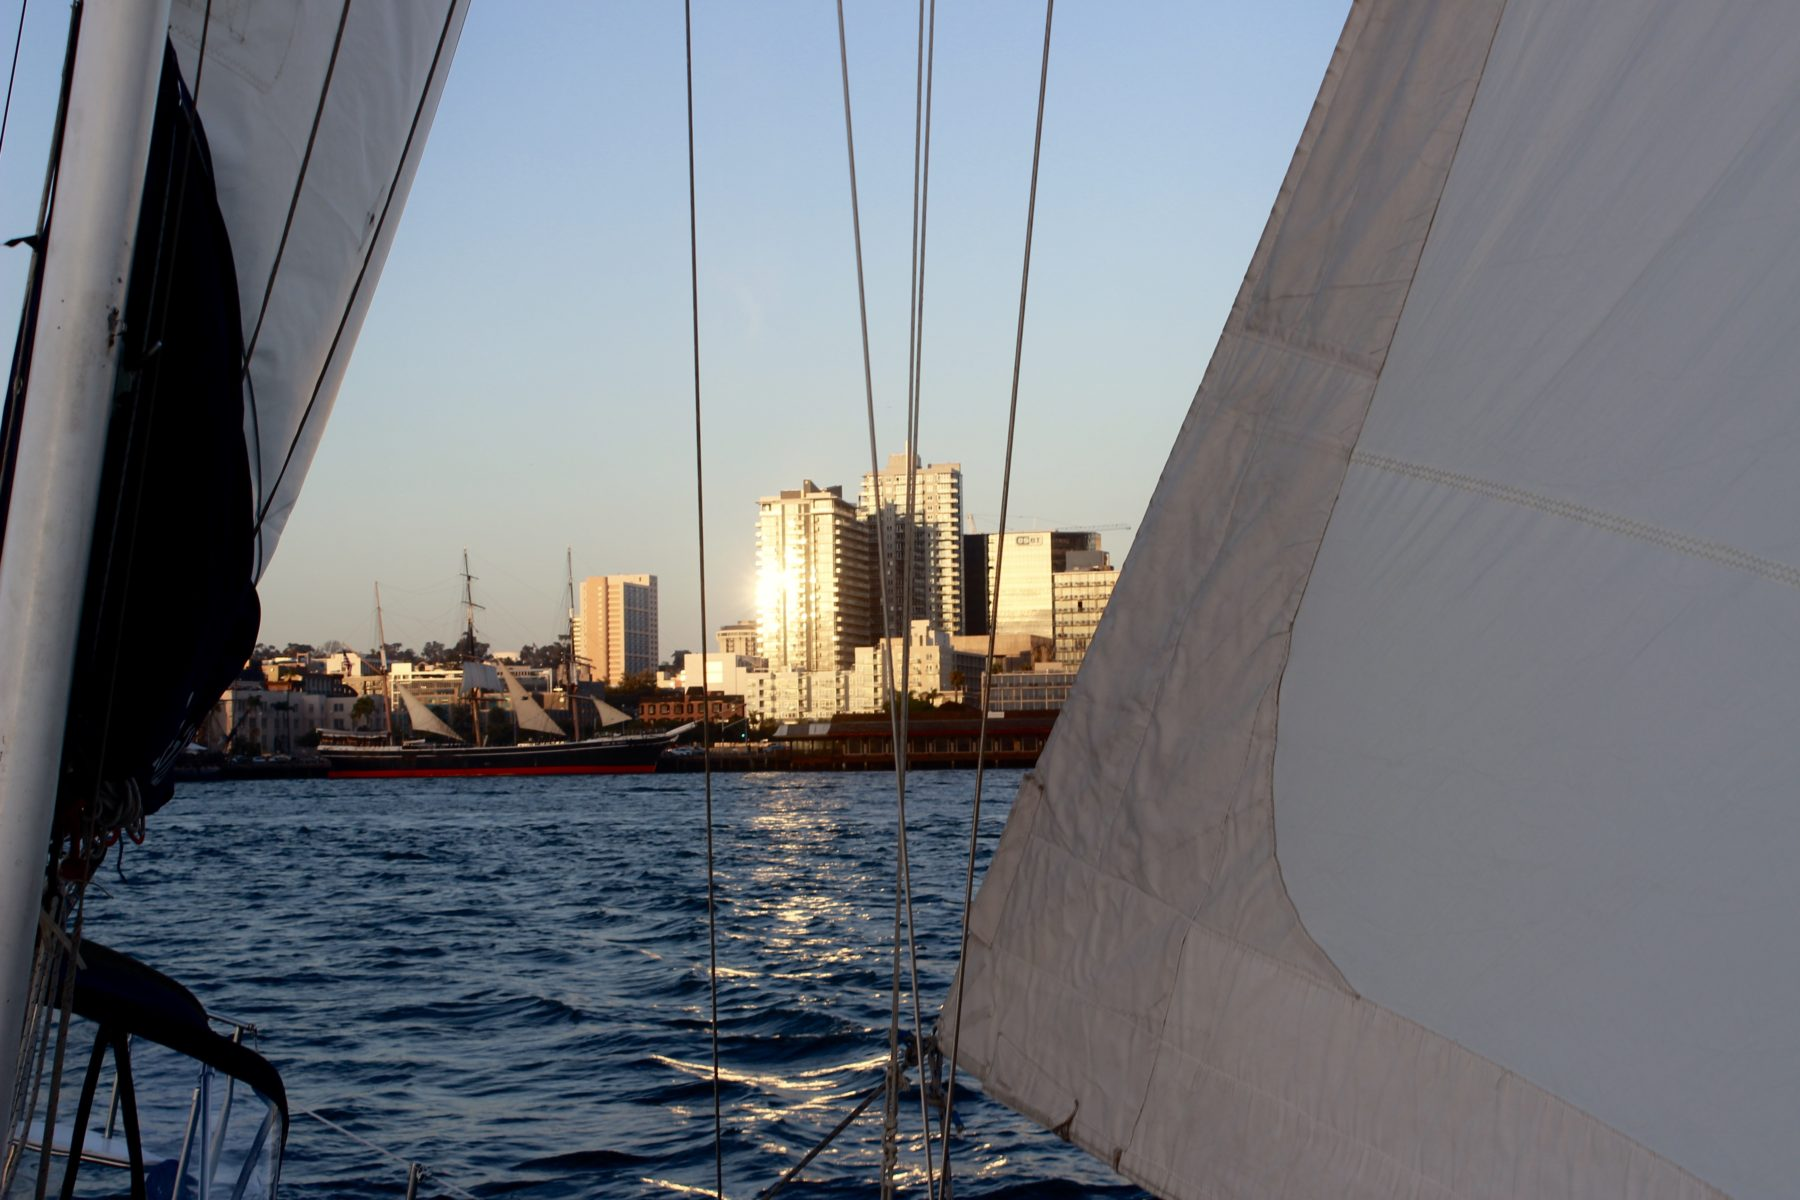 It's Nautical! Common phrases borne from sailing